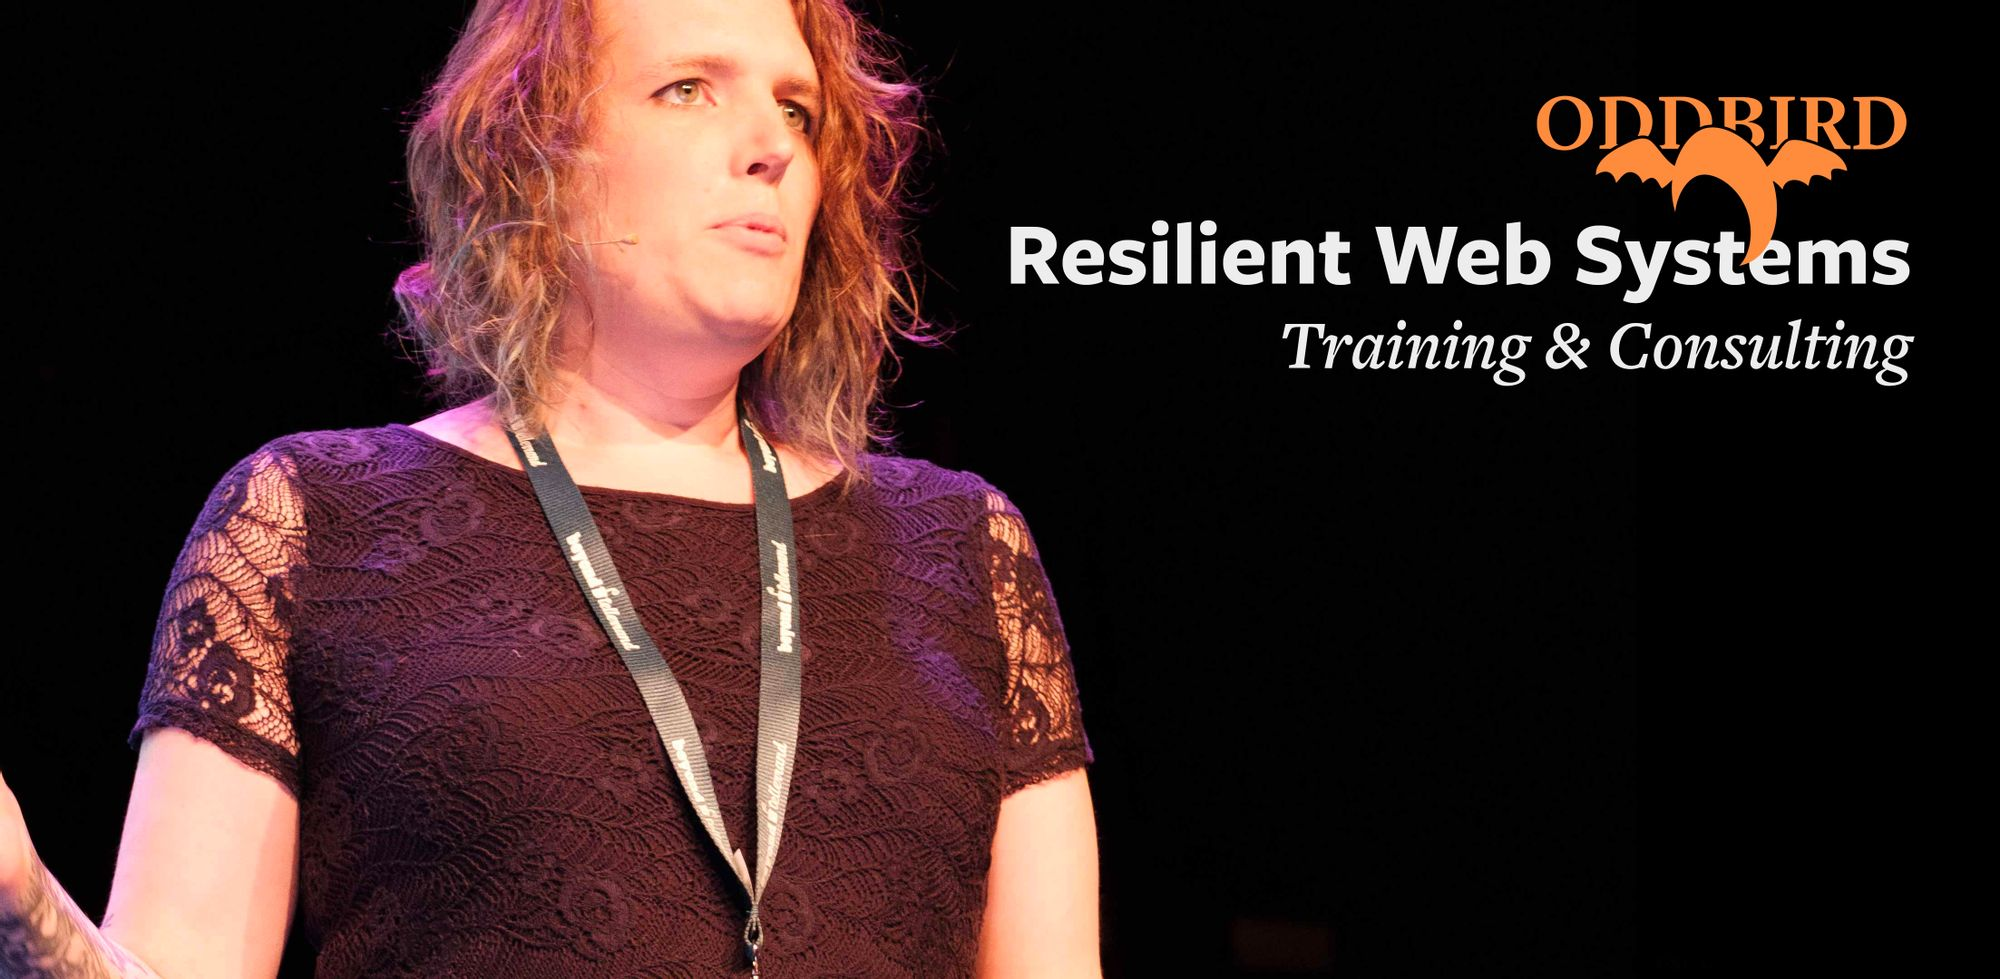 Create resilient web applications with OddBird & Miriam Suzanne